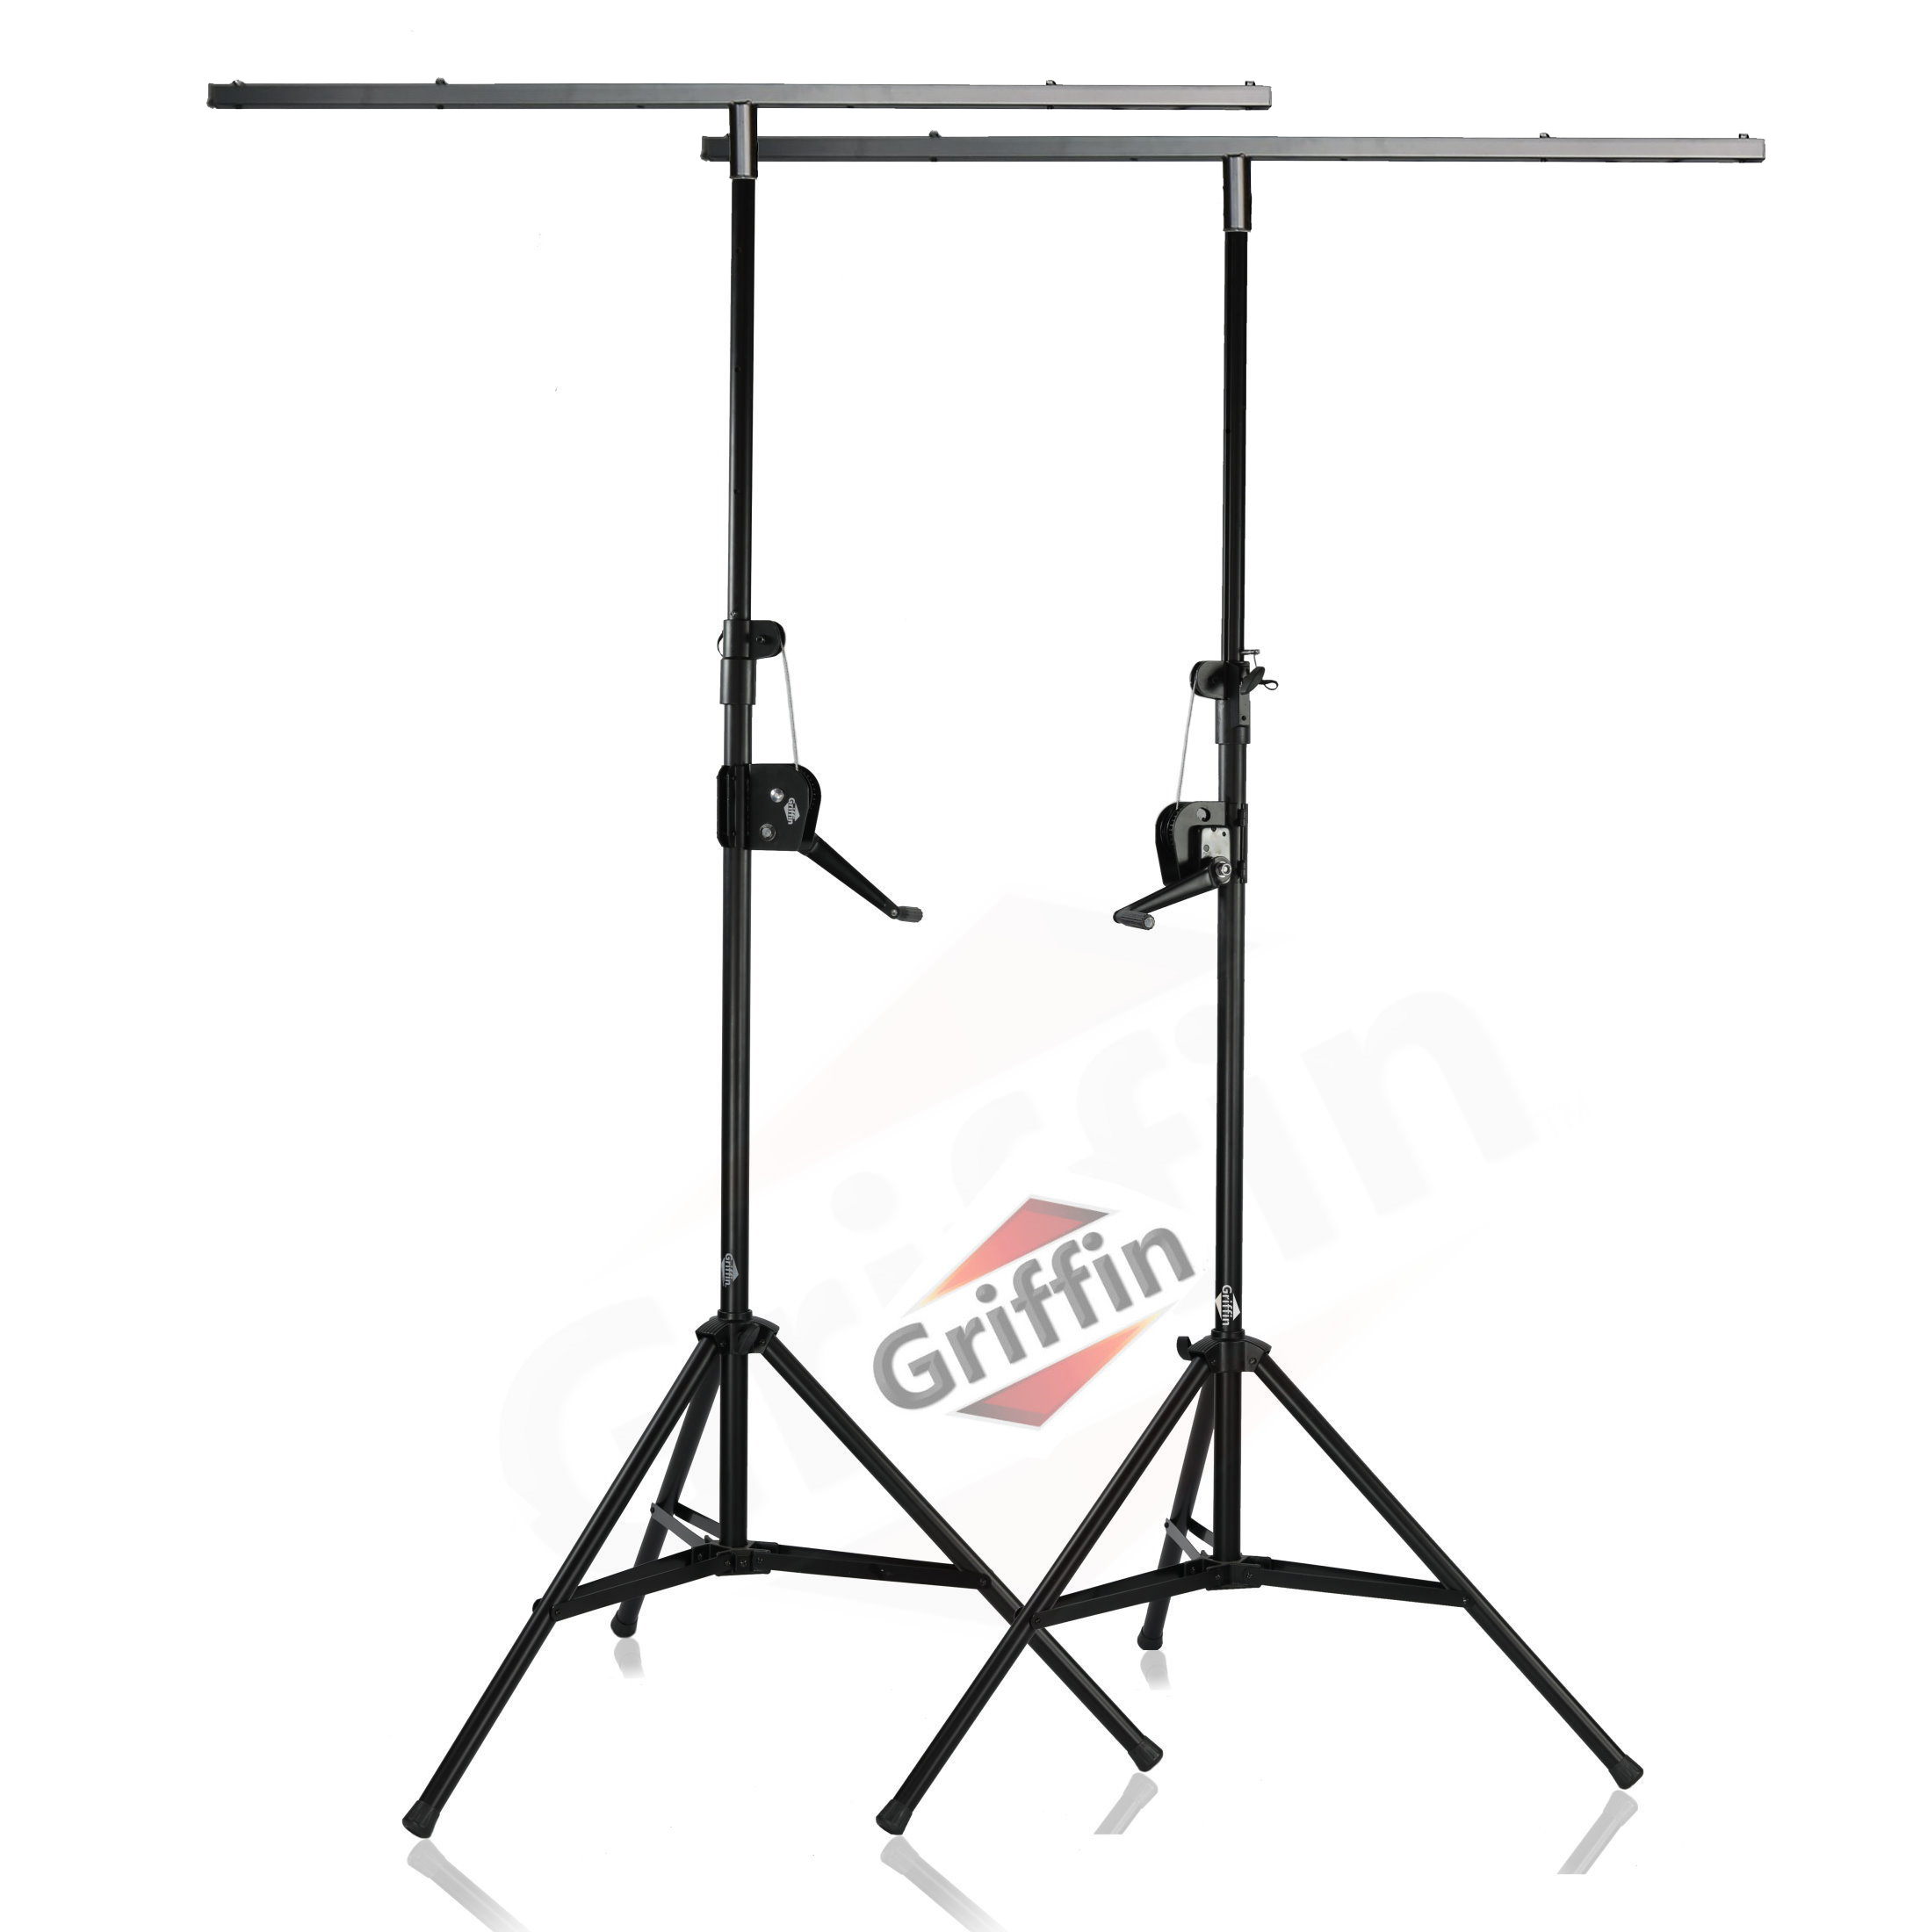 Stage Up crank up dj light stands pack of 2 stage lighting truss system by